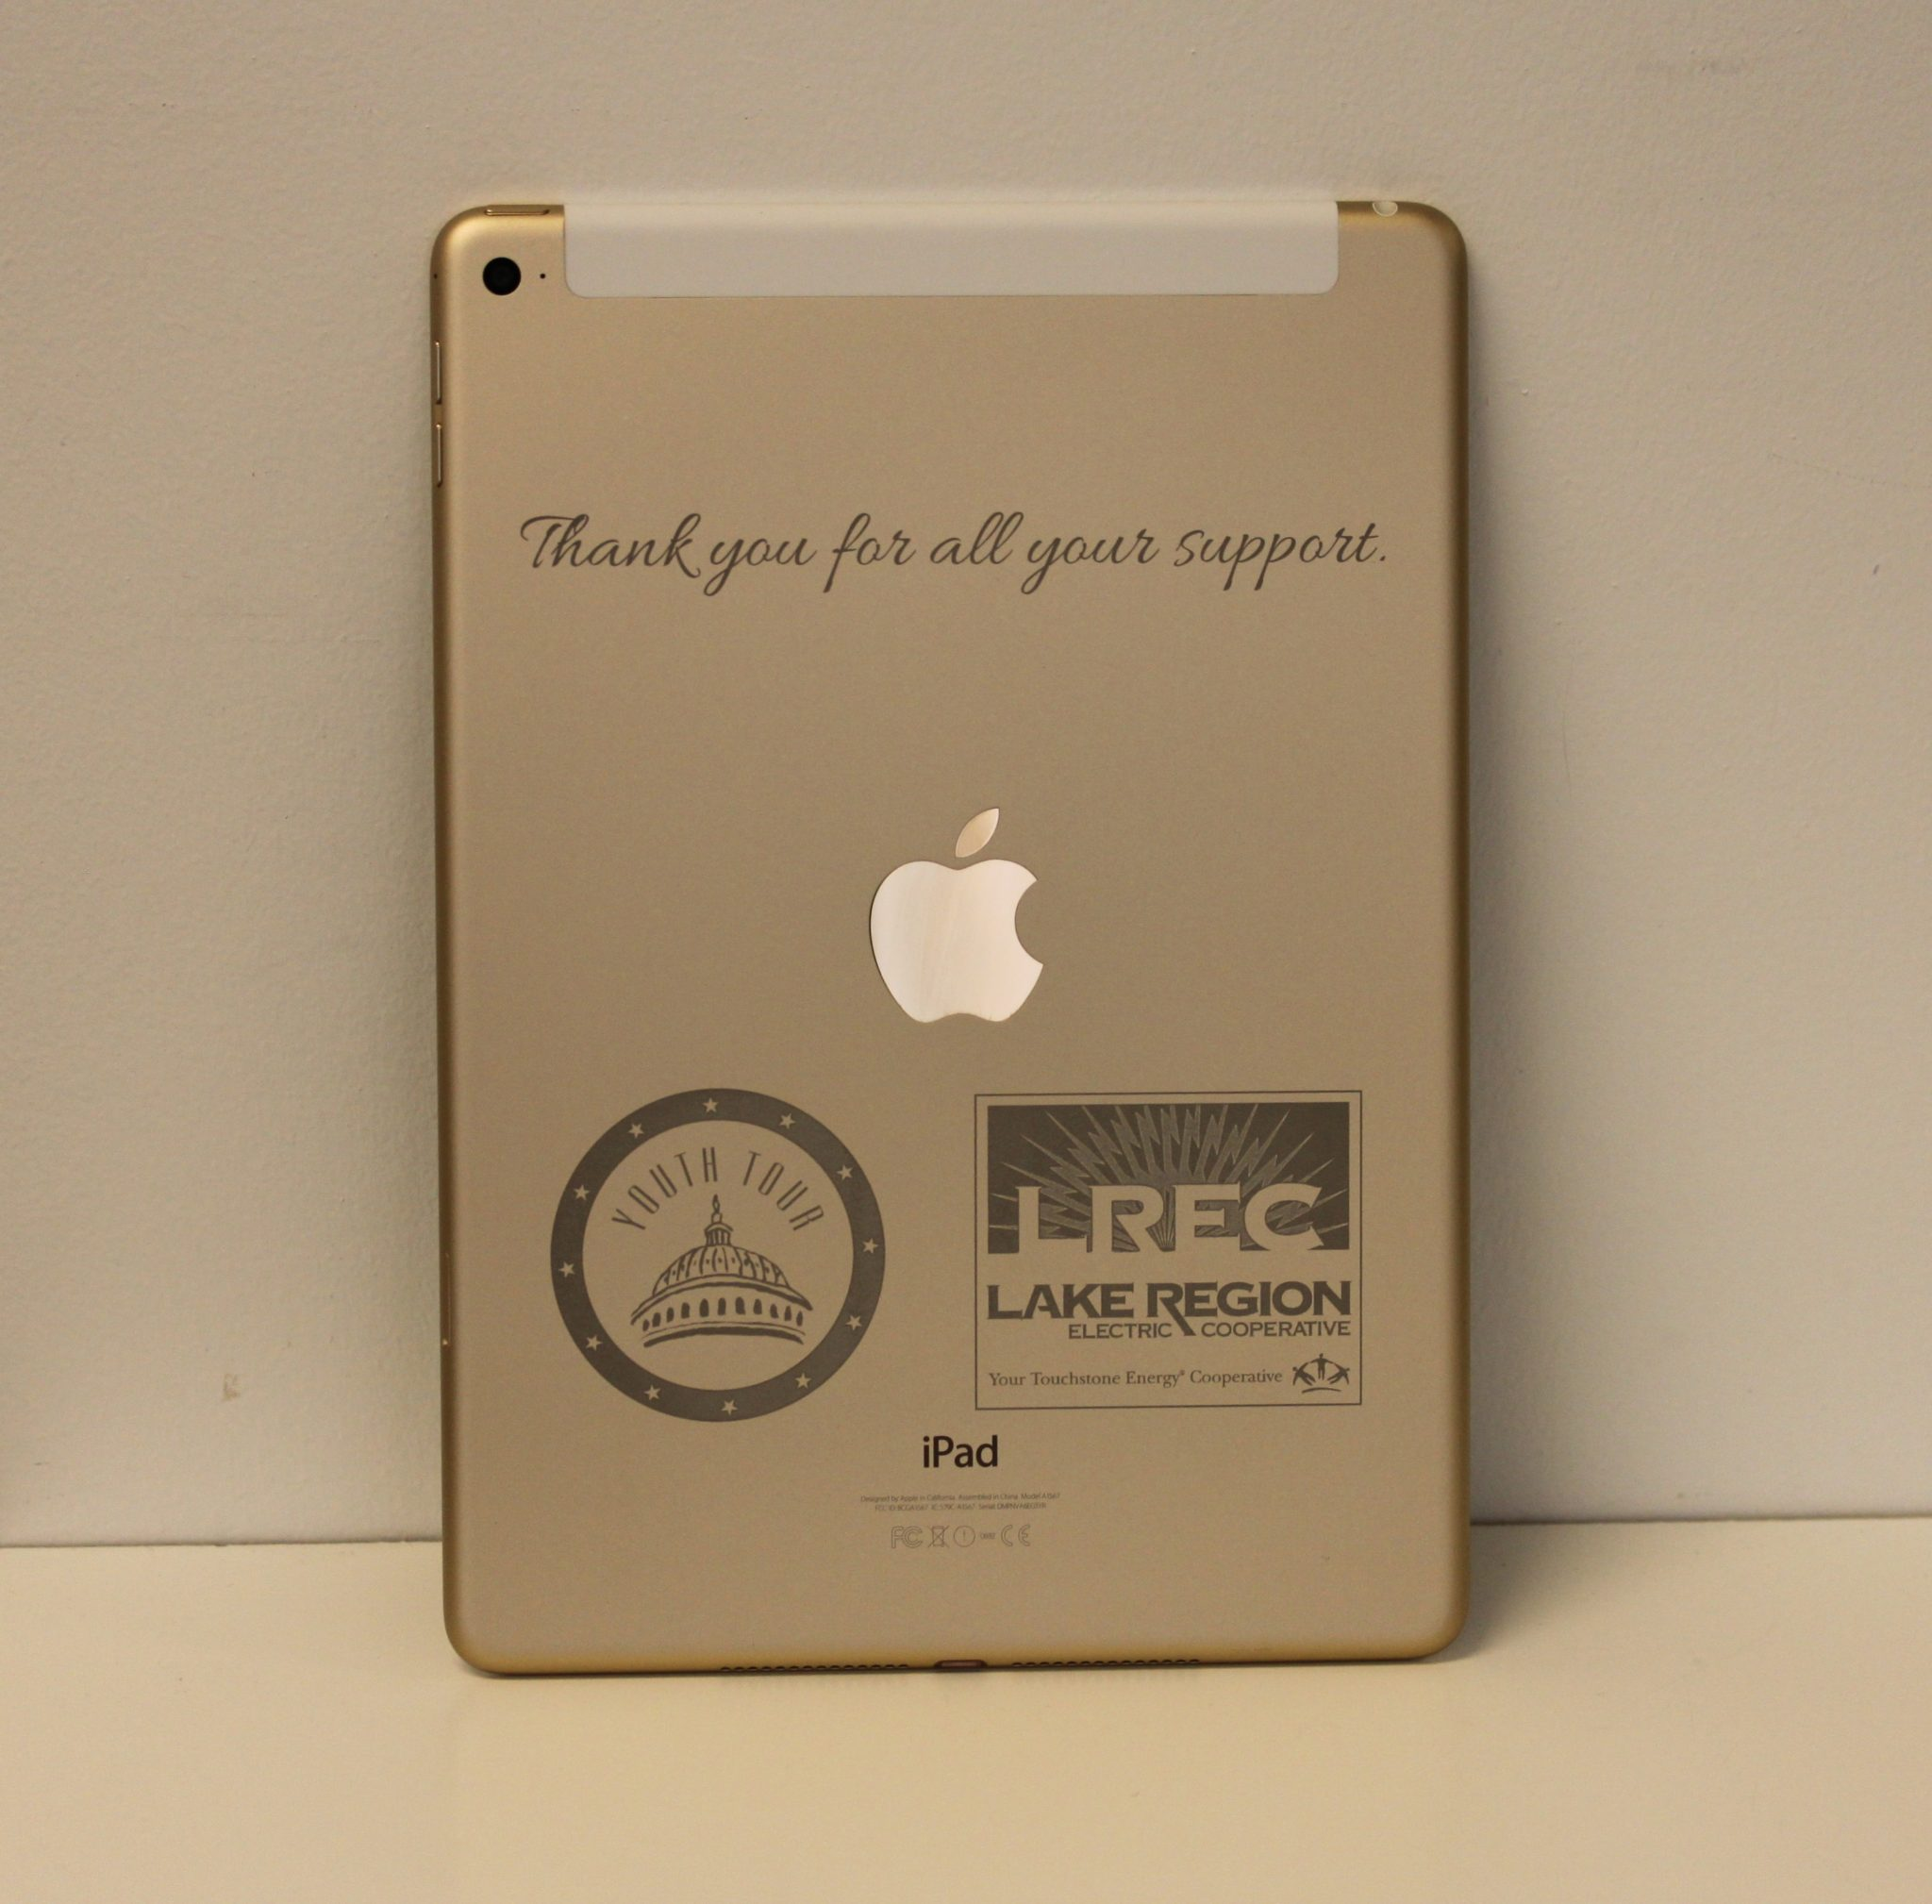 Engraving Apple's Gold iPads, iPhones, and MacBooks 1